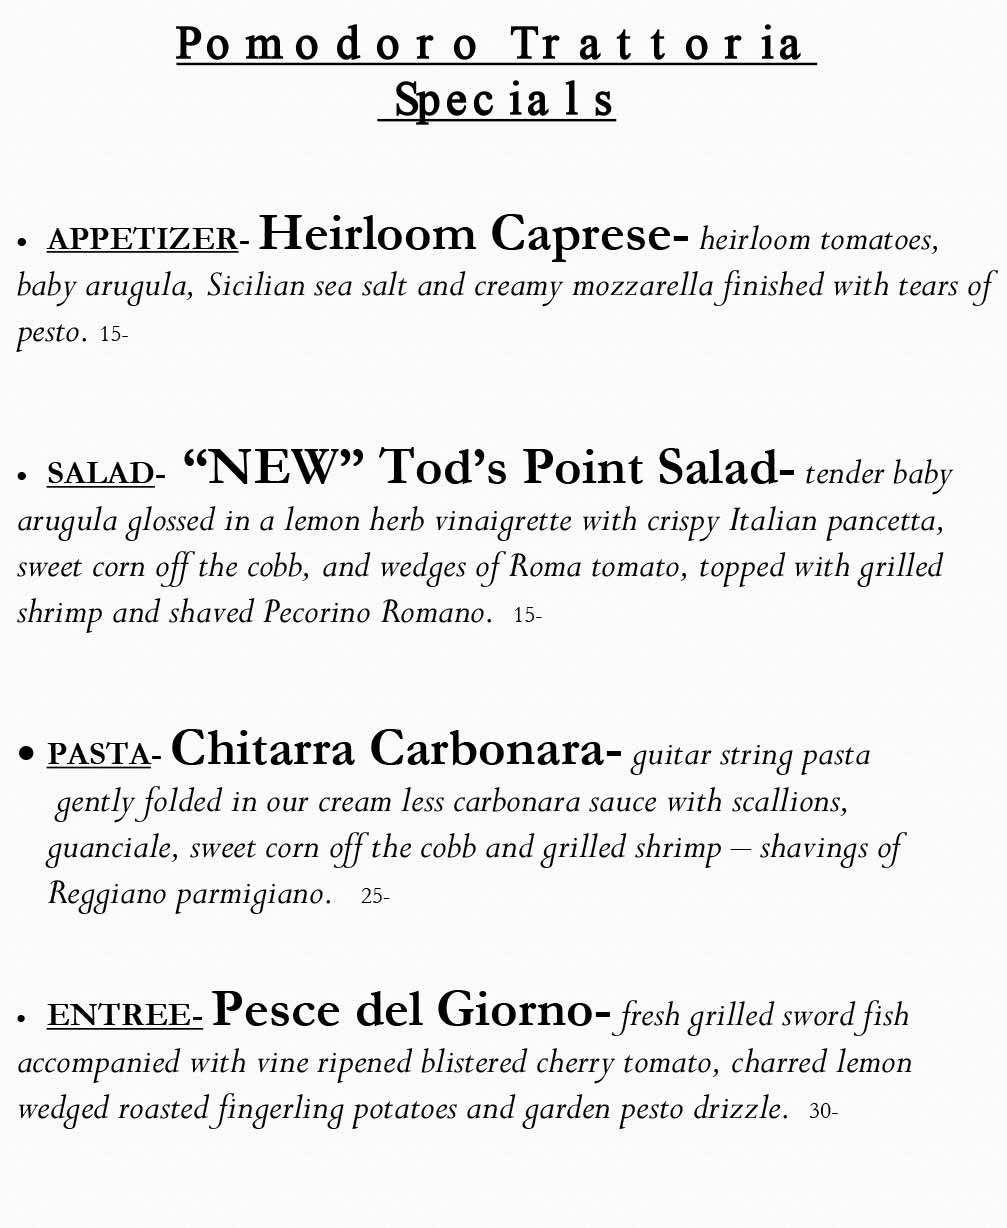 Pomodoro Riverside Weekly Specials from 07/12 - 07/19